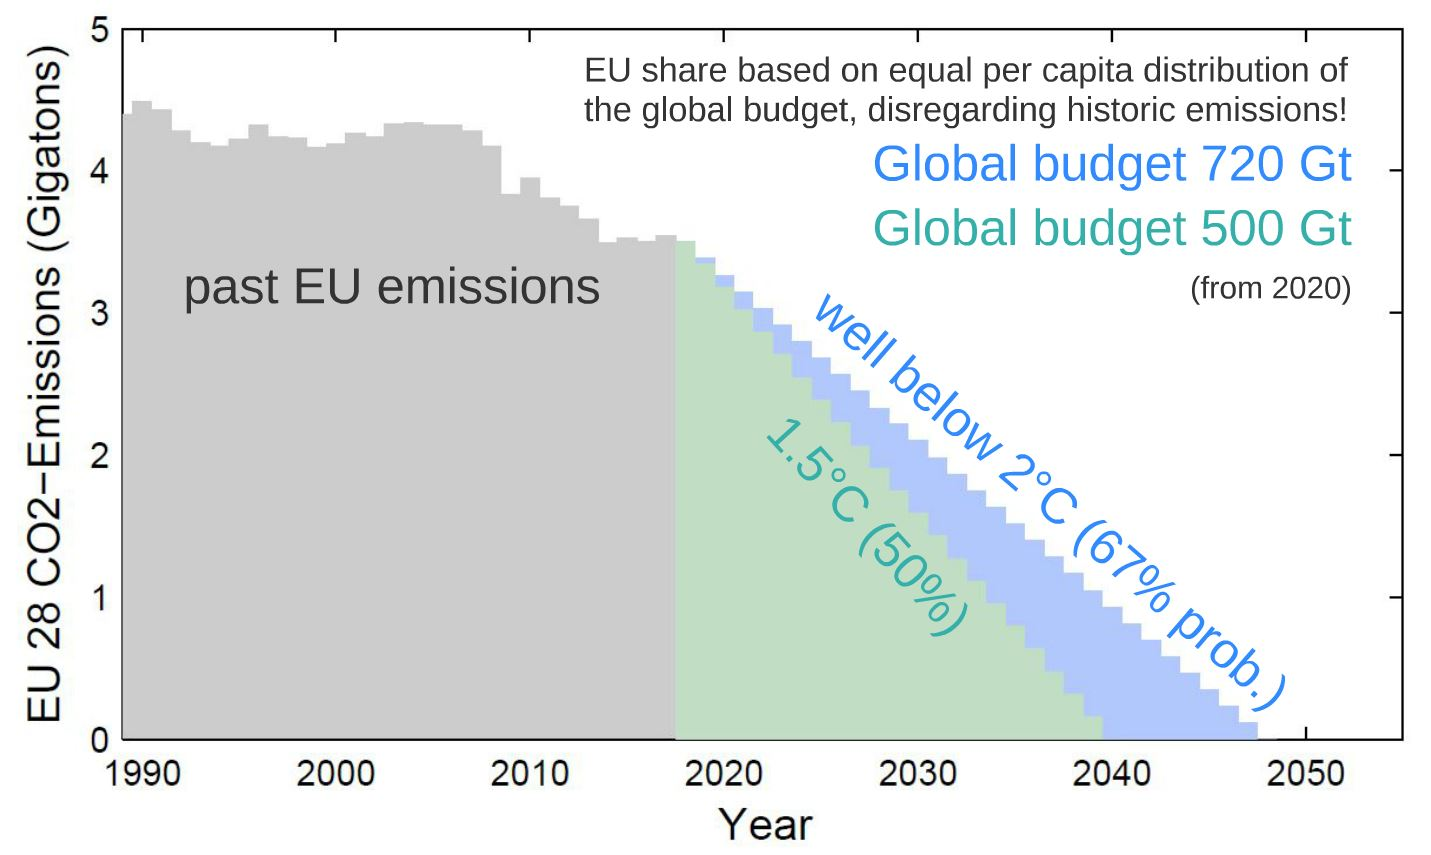 EU 28 CO2-Emissions   Presenting climate science at the European People's Party Congress #EPPZagreb. What would Paris-compatible EU emissions look like, if the global CO2 emissions budget was distributed on an equal per capita basis after the Paris Agreement?  [https://publish.twitter.com/?query=https%3A%2F%2Ftwitter.com%2Frahmstorf%2Fstatus%2F1197510608020746241&widget=Tweet] accessed on 29, Oct. 2020.